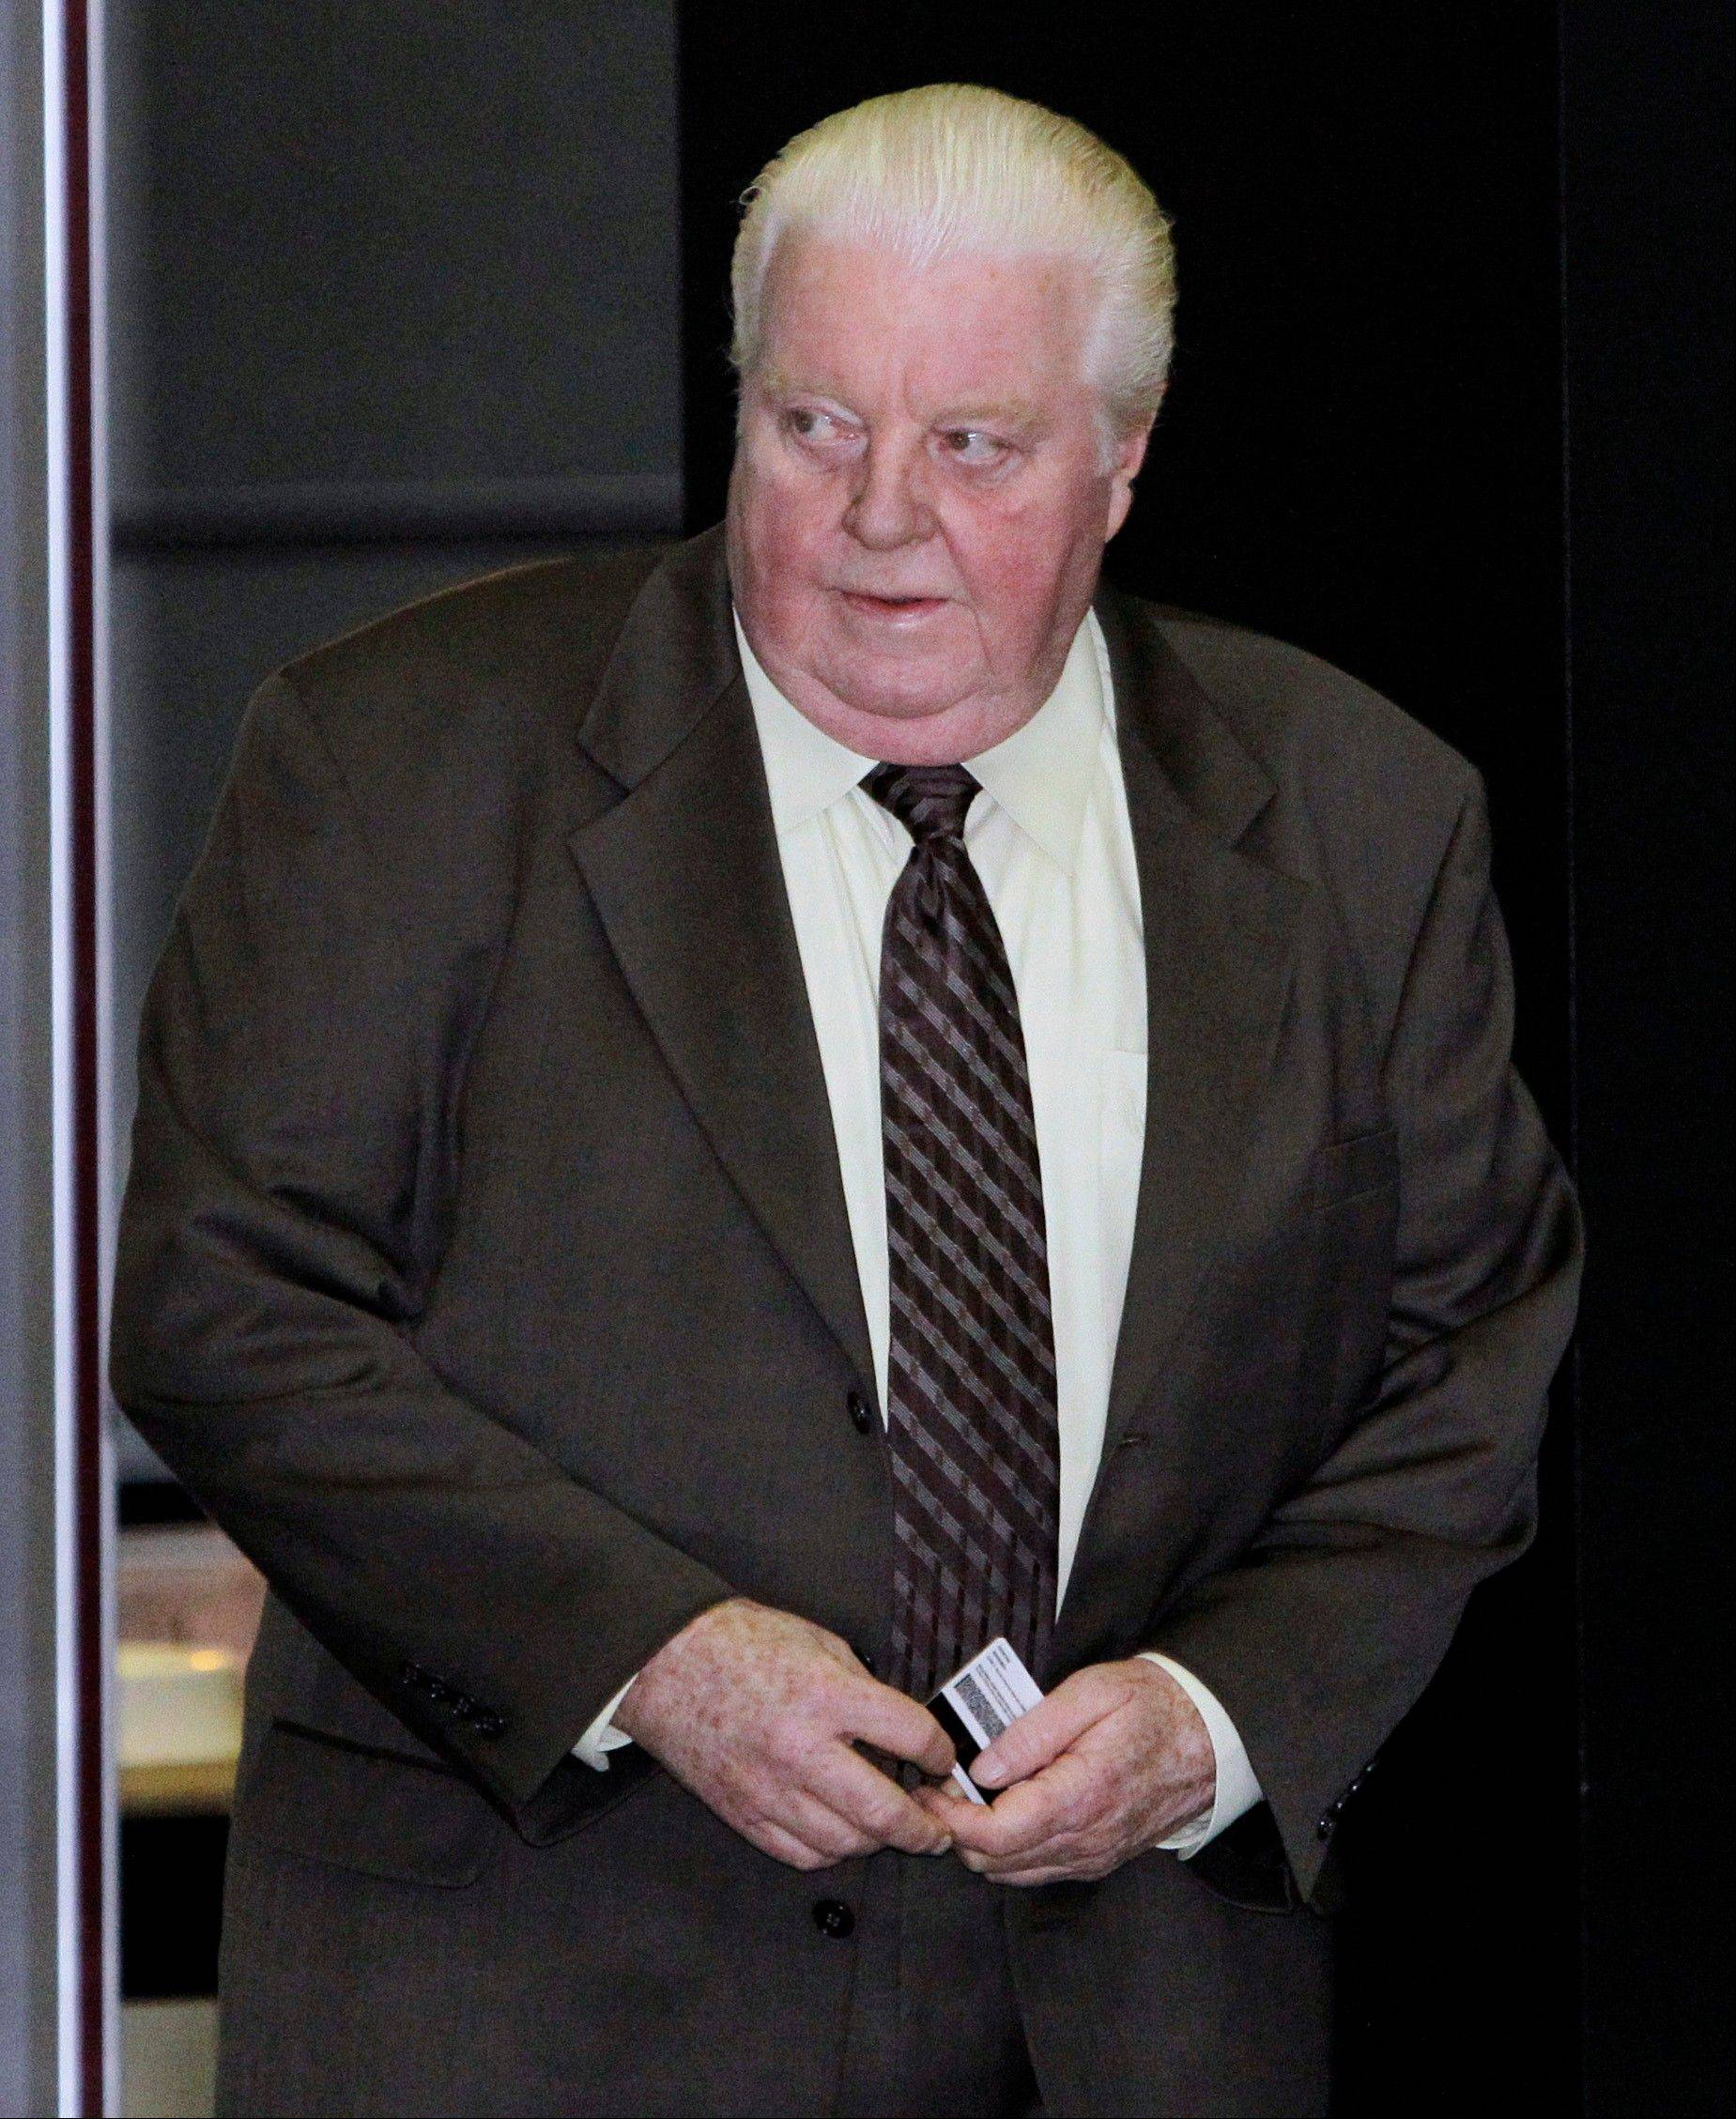 Former Chicago police Lt. Jon Burge was convicted last year of lying about the torture of suspects decades ago.